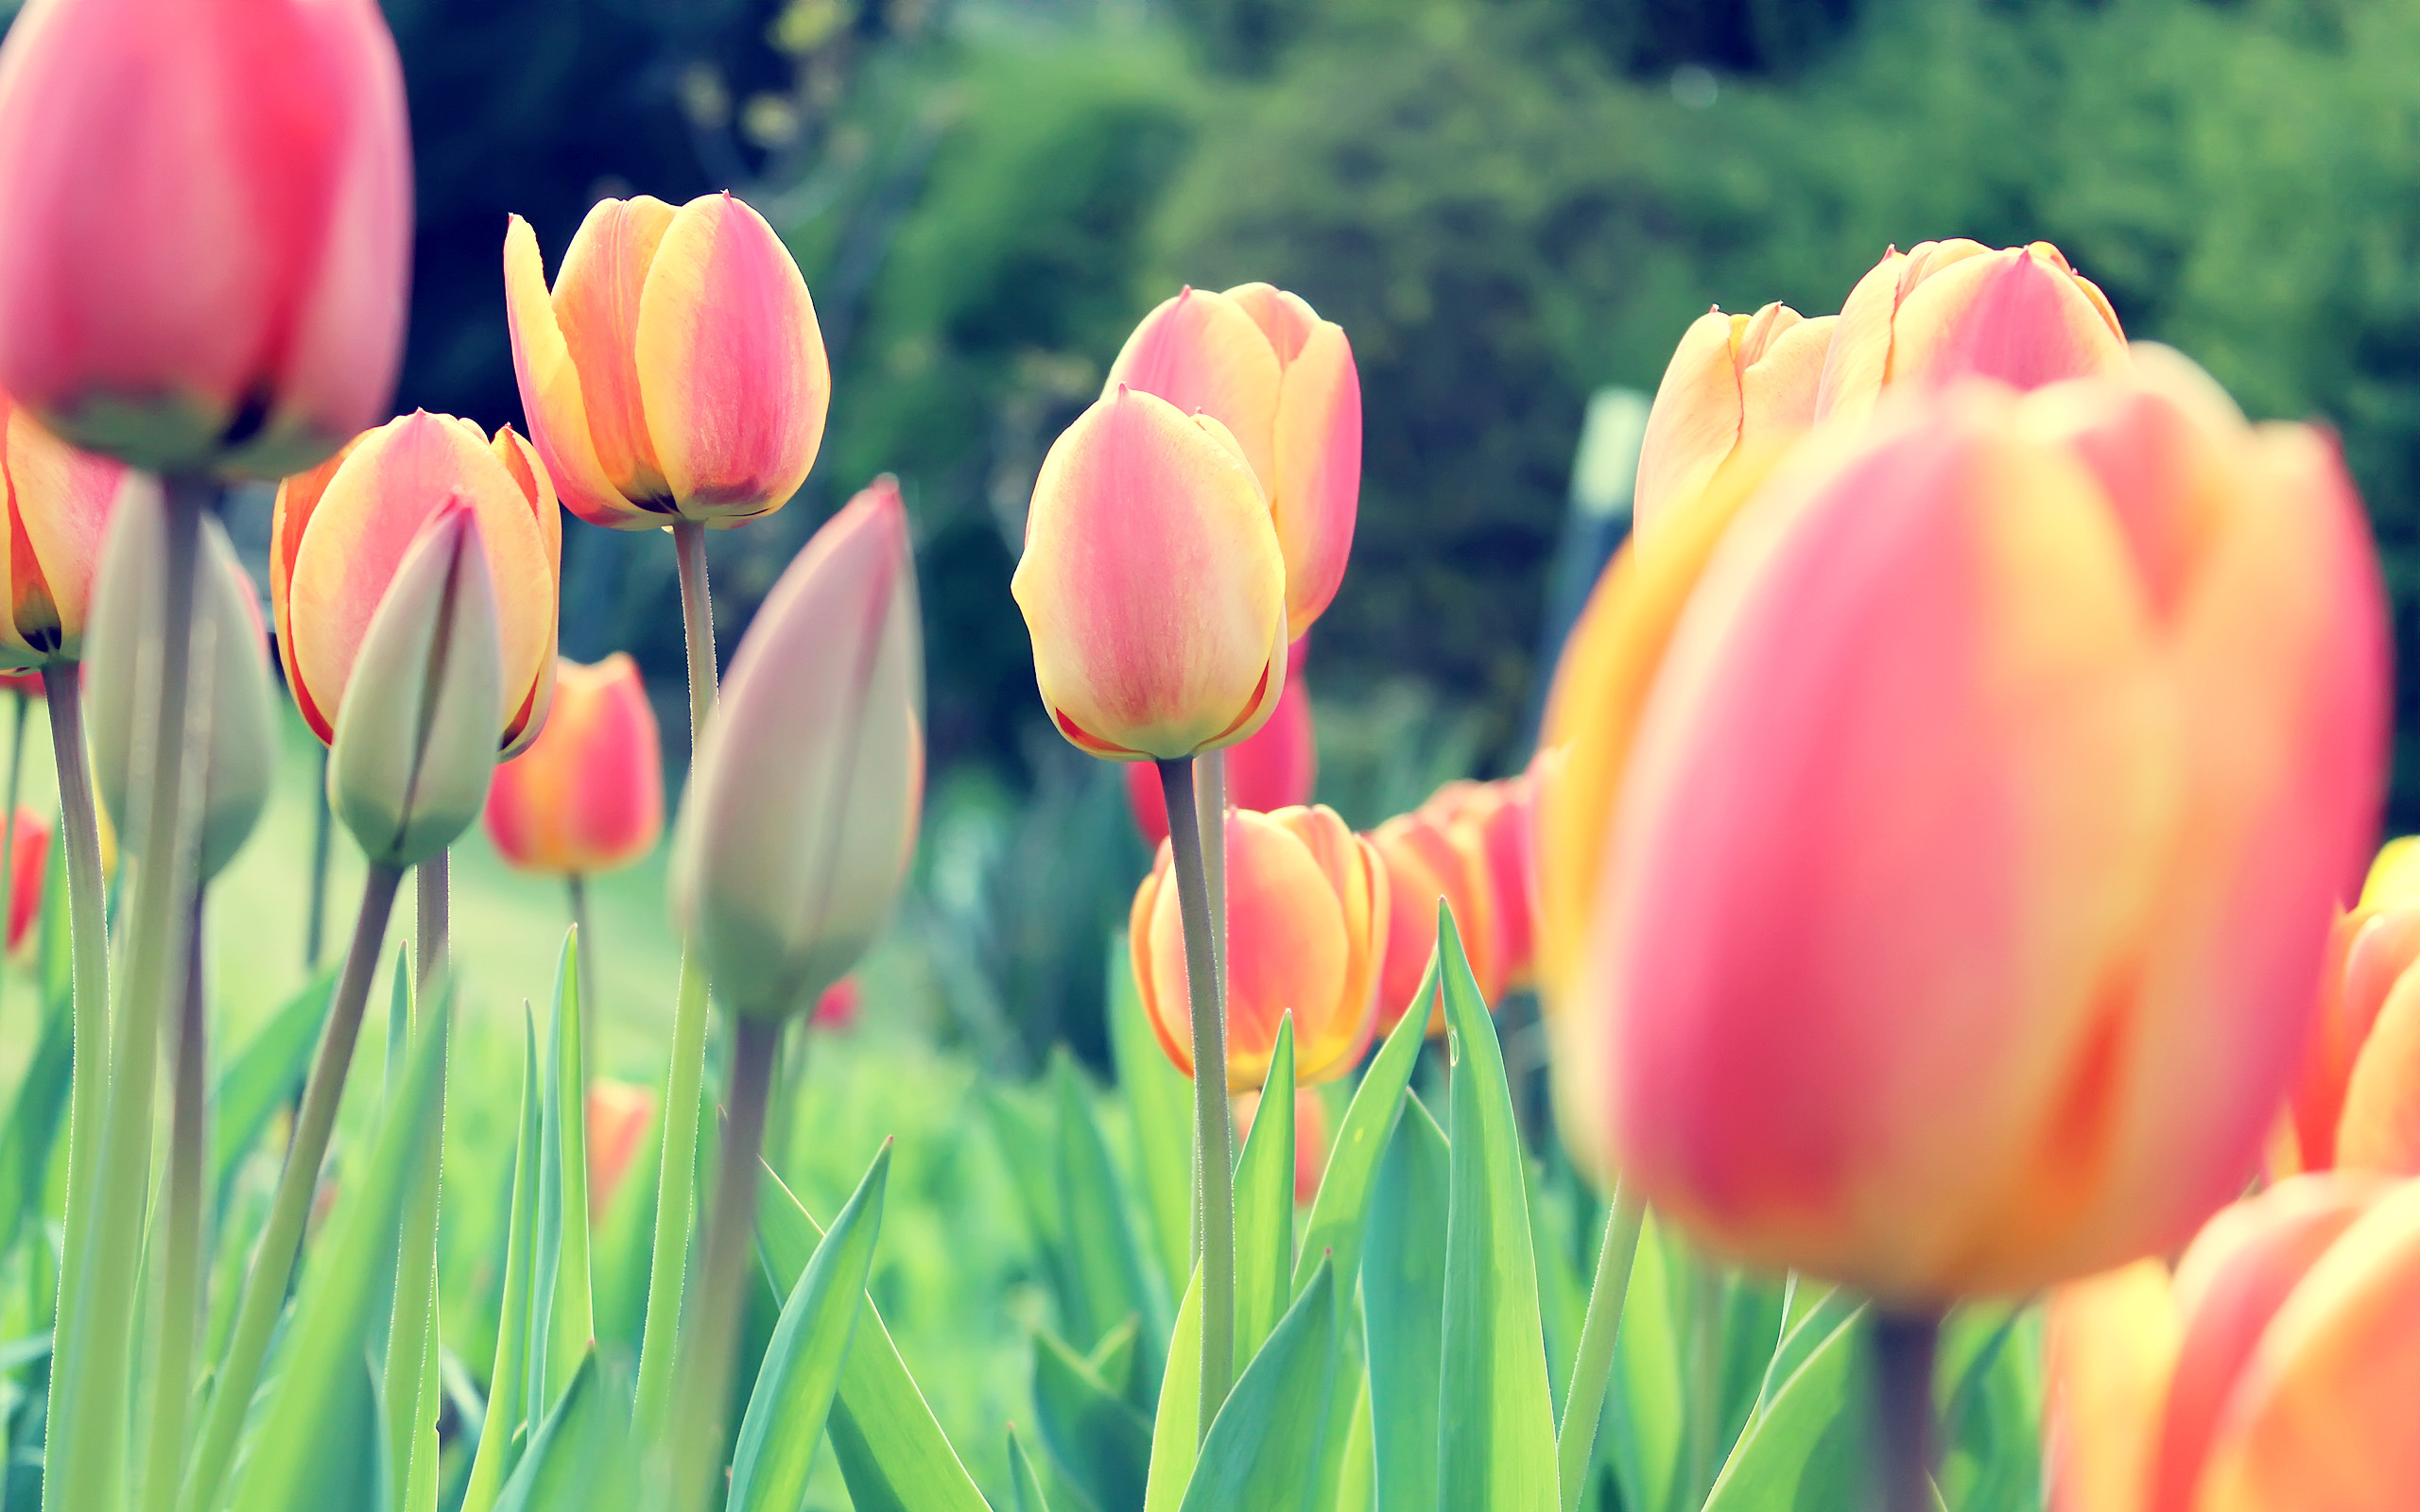 Spring is in the air! And we have the specials and tips to keep you